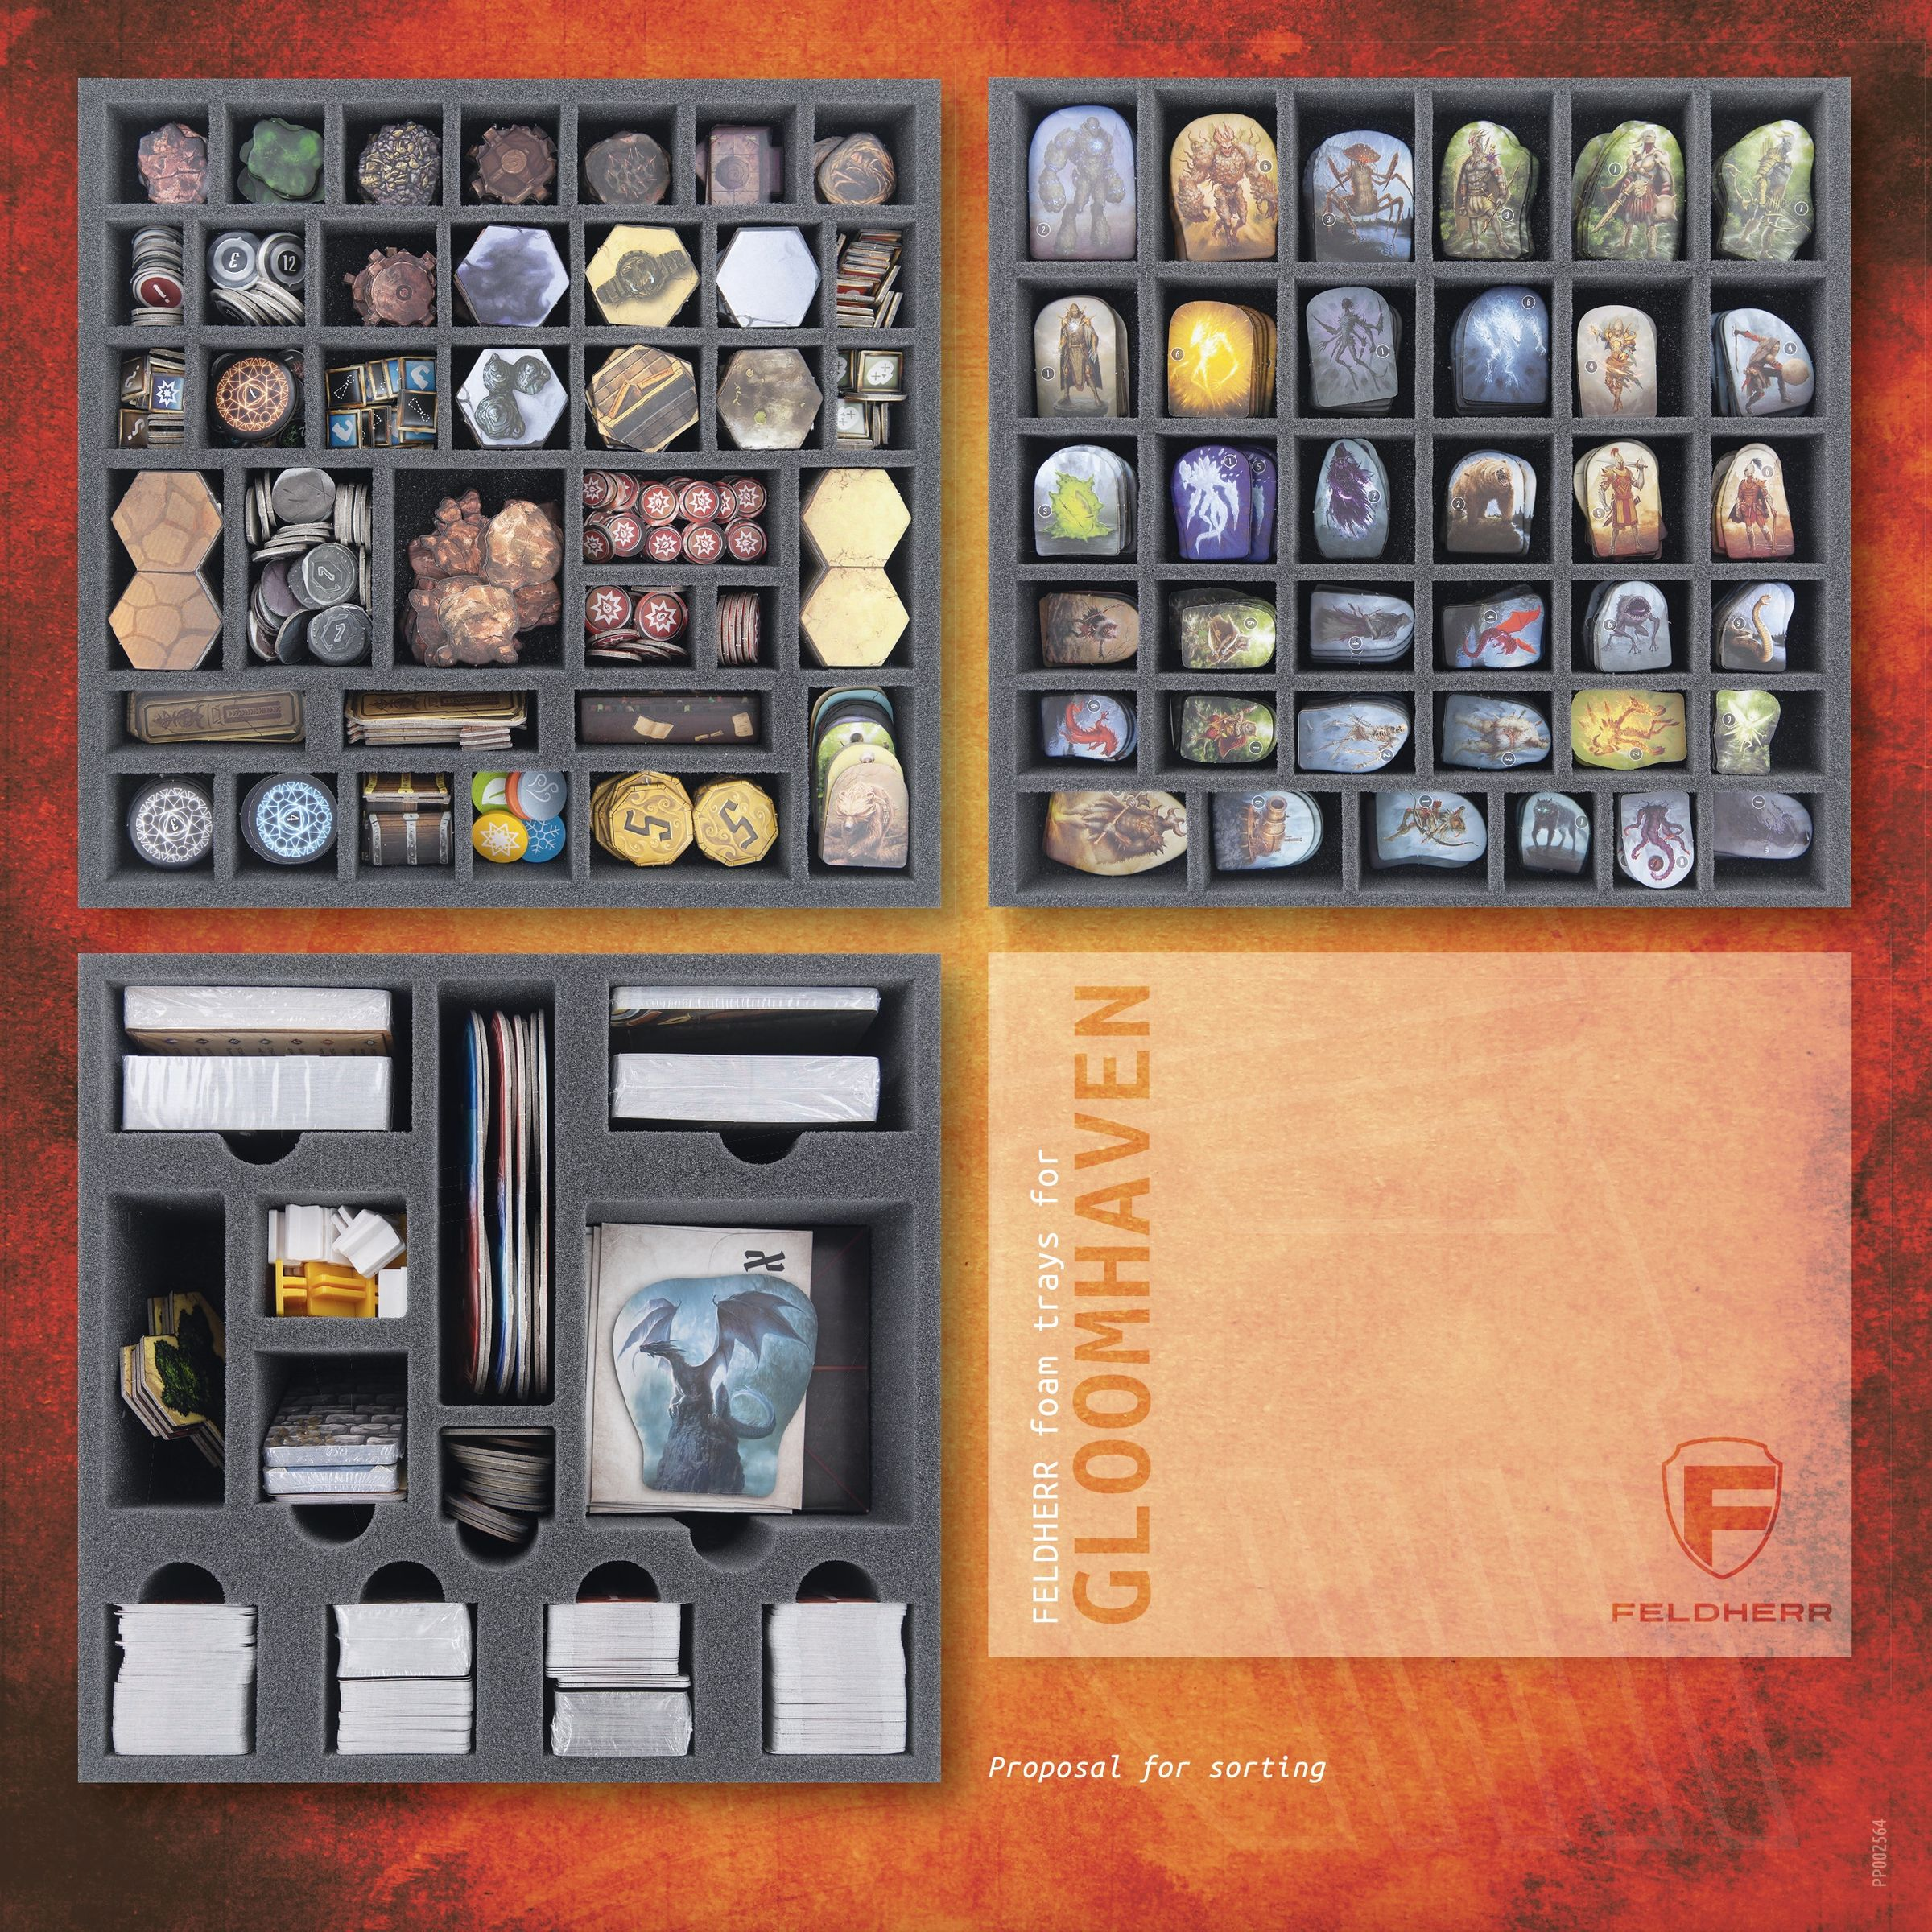 PP002564 - Flyer for Gloomhaven Board Game Box